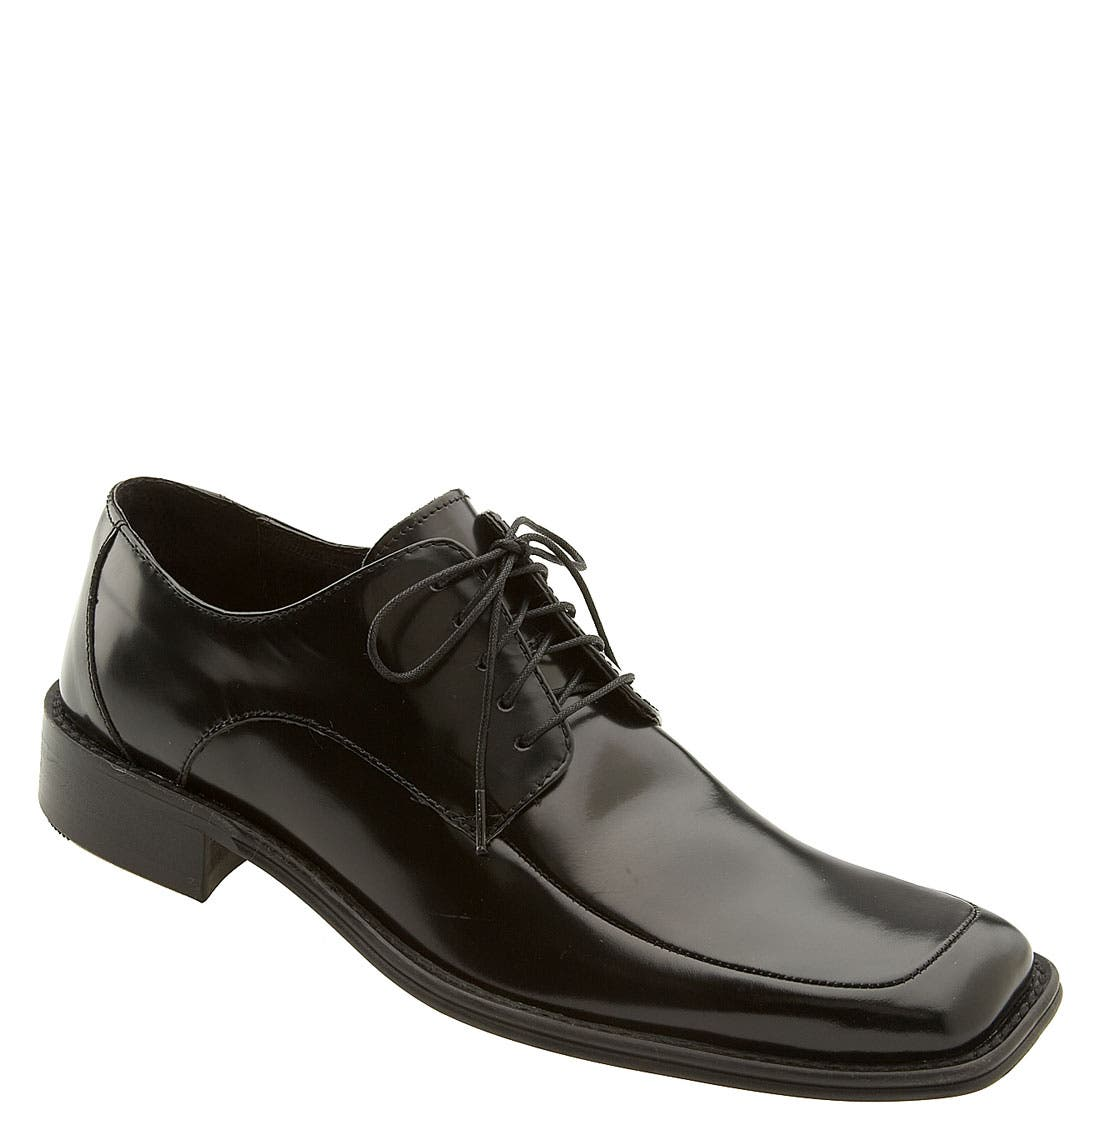 Main Image - Kenneth Cole New York 'Town Hall' Apron Toe Oxford (Online Only)